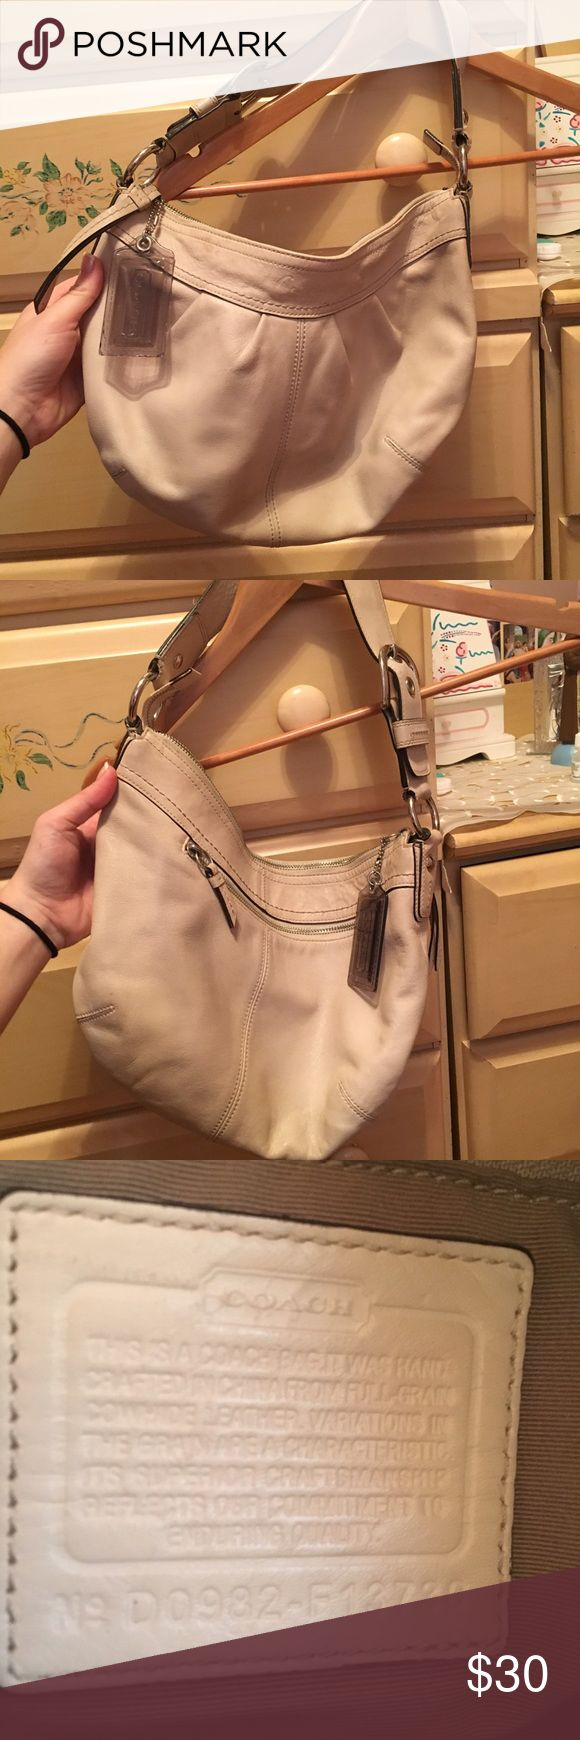 Authentic coach Pocketbook Beige coach Pocketbook. Message me for more details and or pictures :) Coach Bags Shoulder Bags